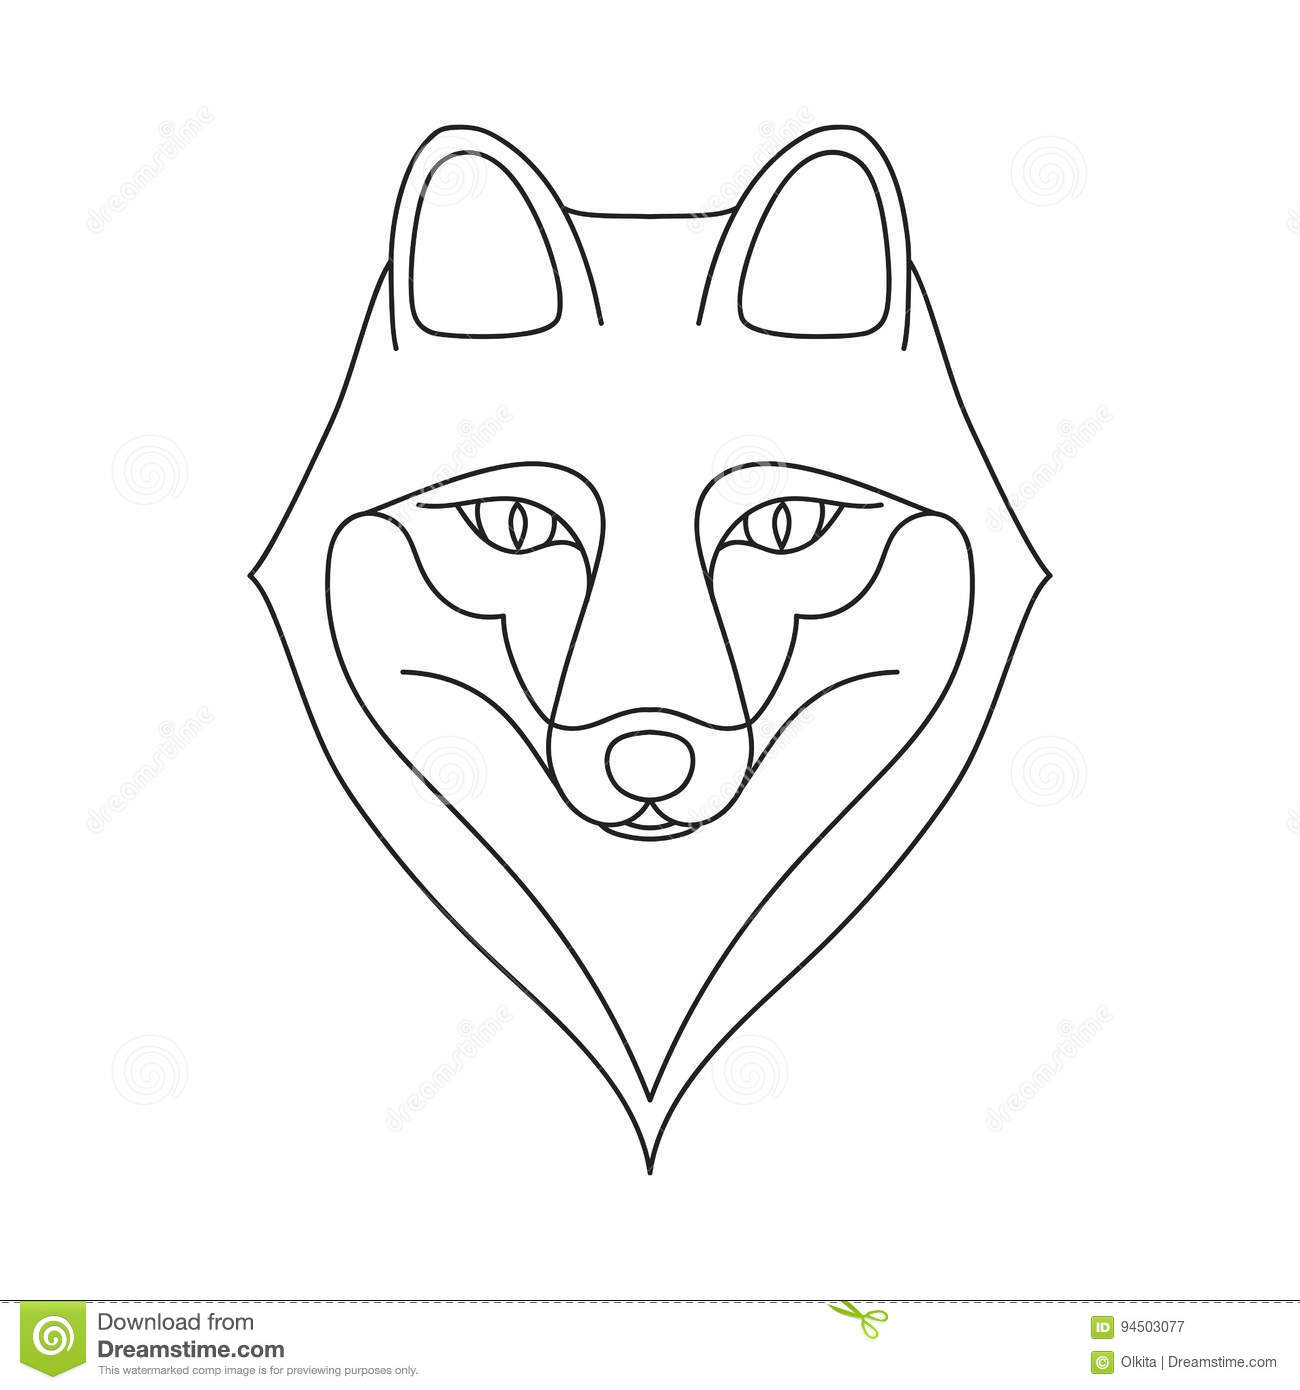 Fox face drawing outline